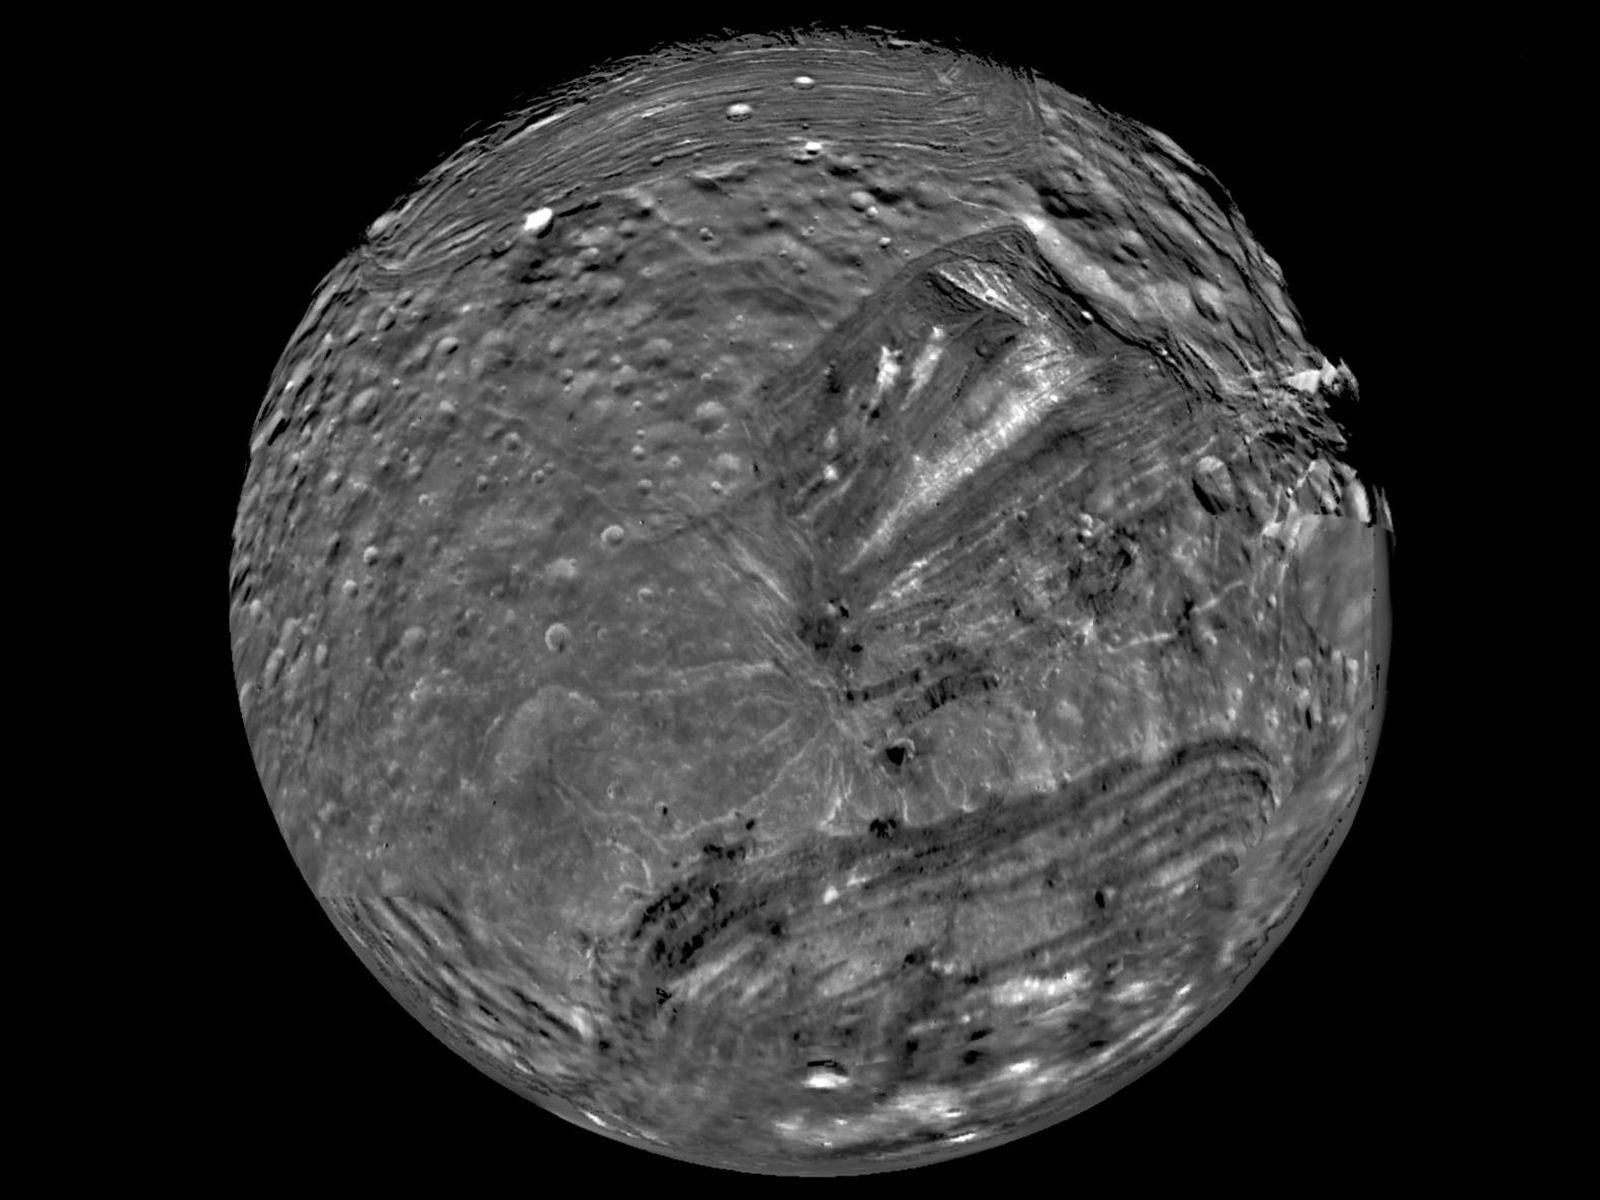 19. Uranus has a very battered moon